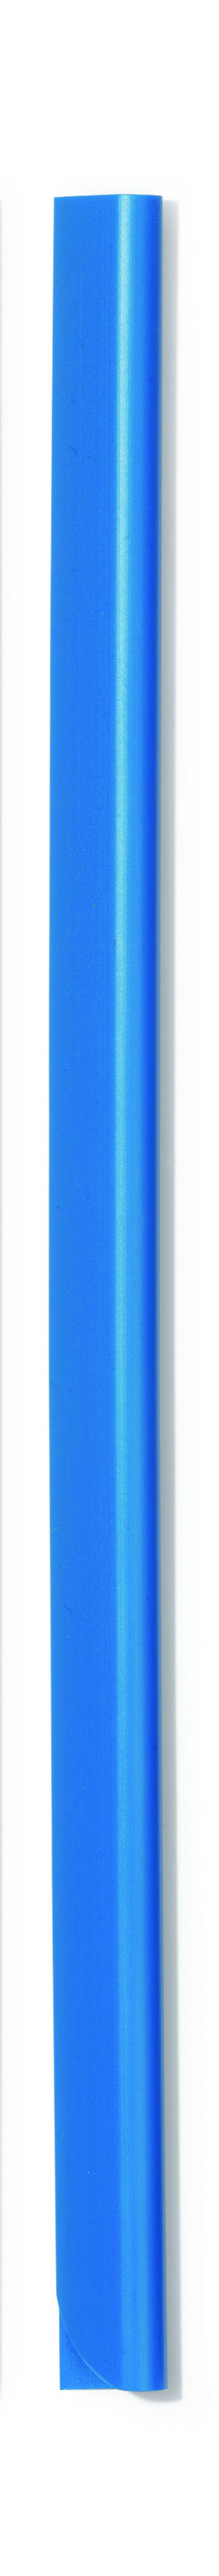 Durable Spine Bar A4 6mm Blue PK100